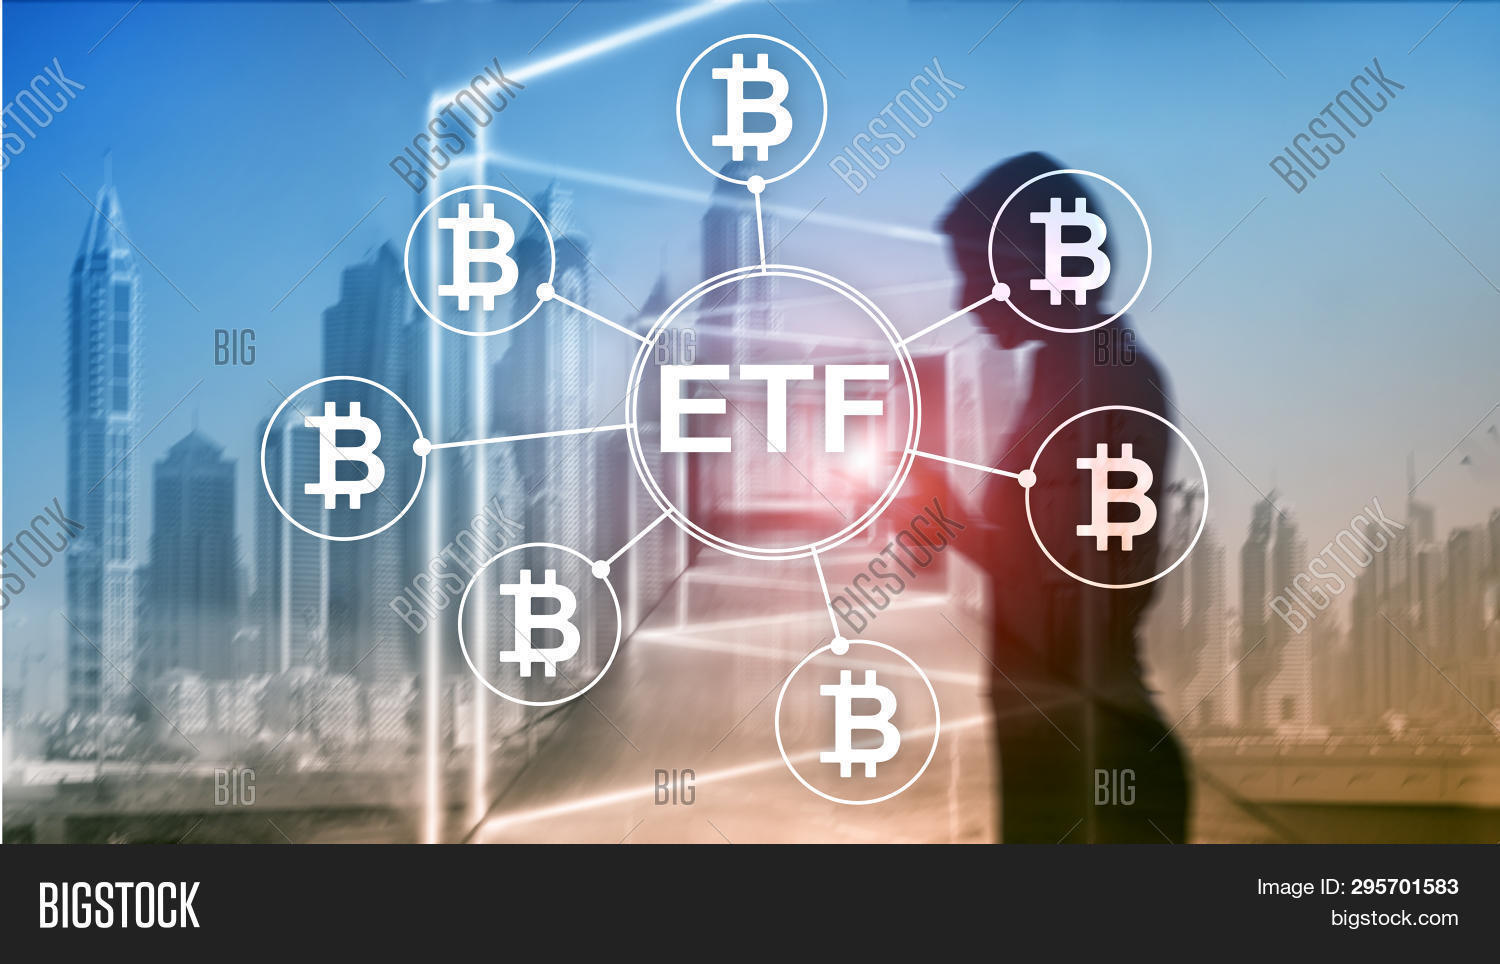 etf for cryptocurrency